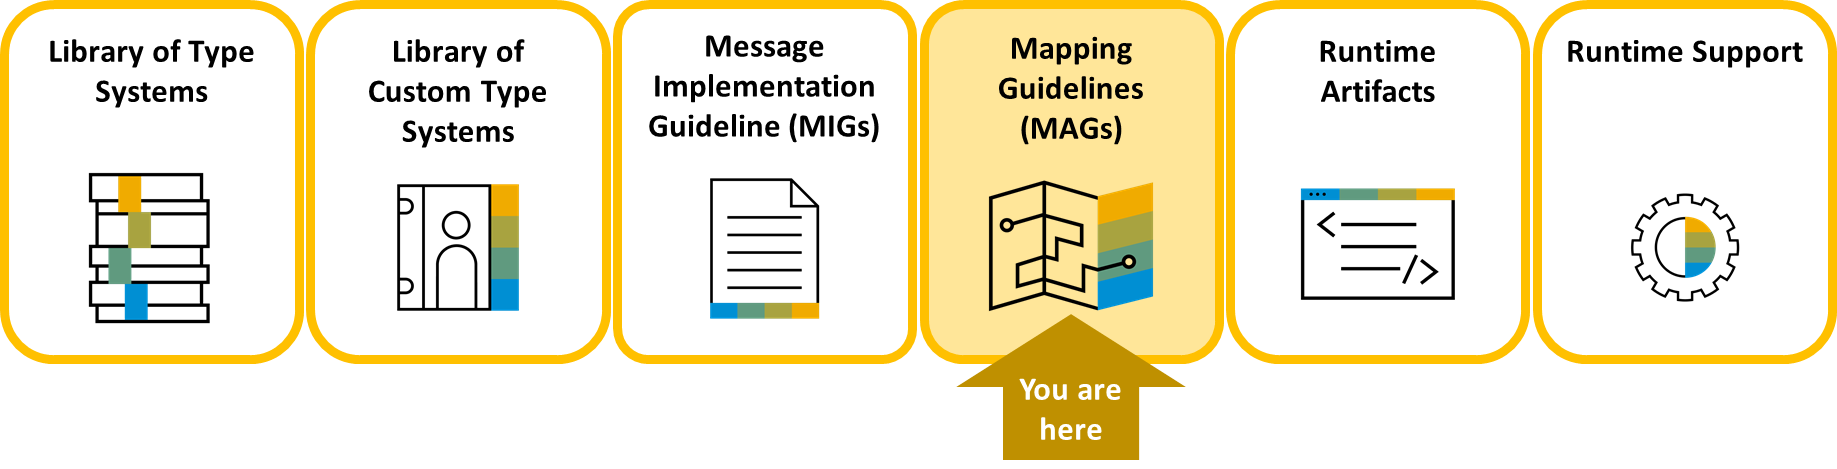 Belongs%20to%20the%20Mapping%20Guideline